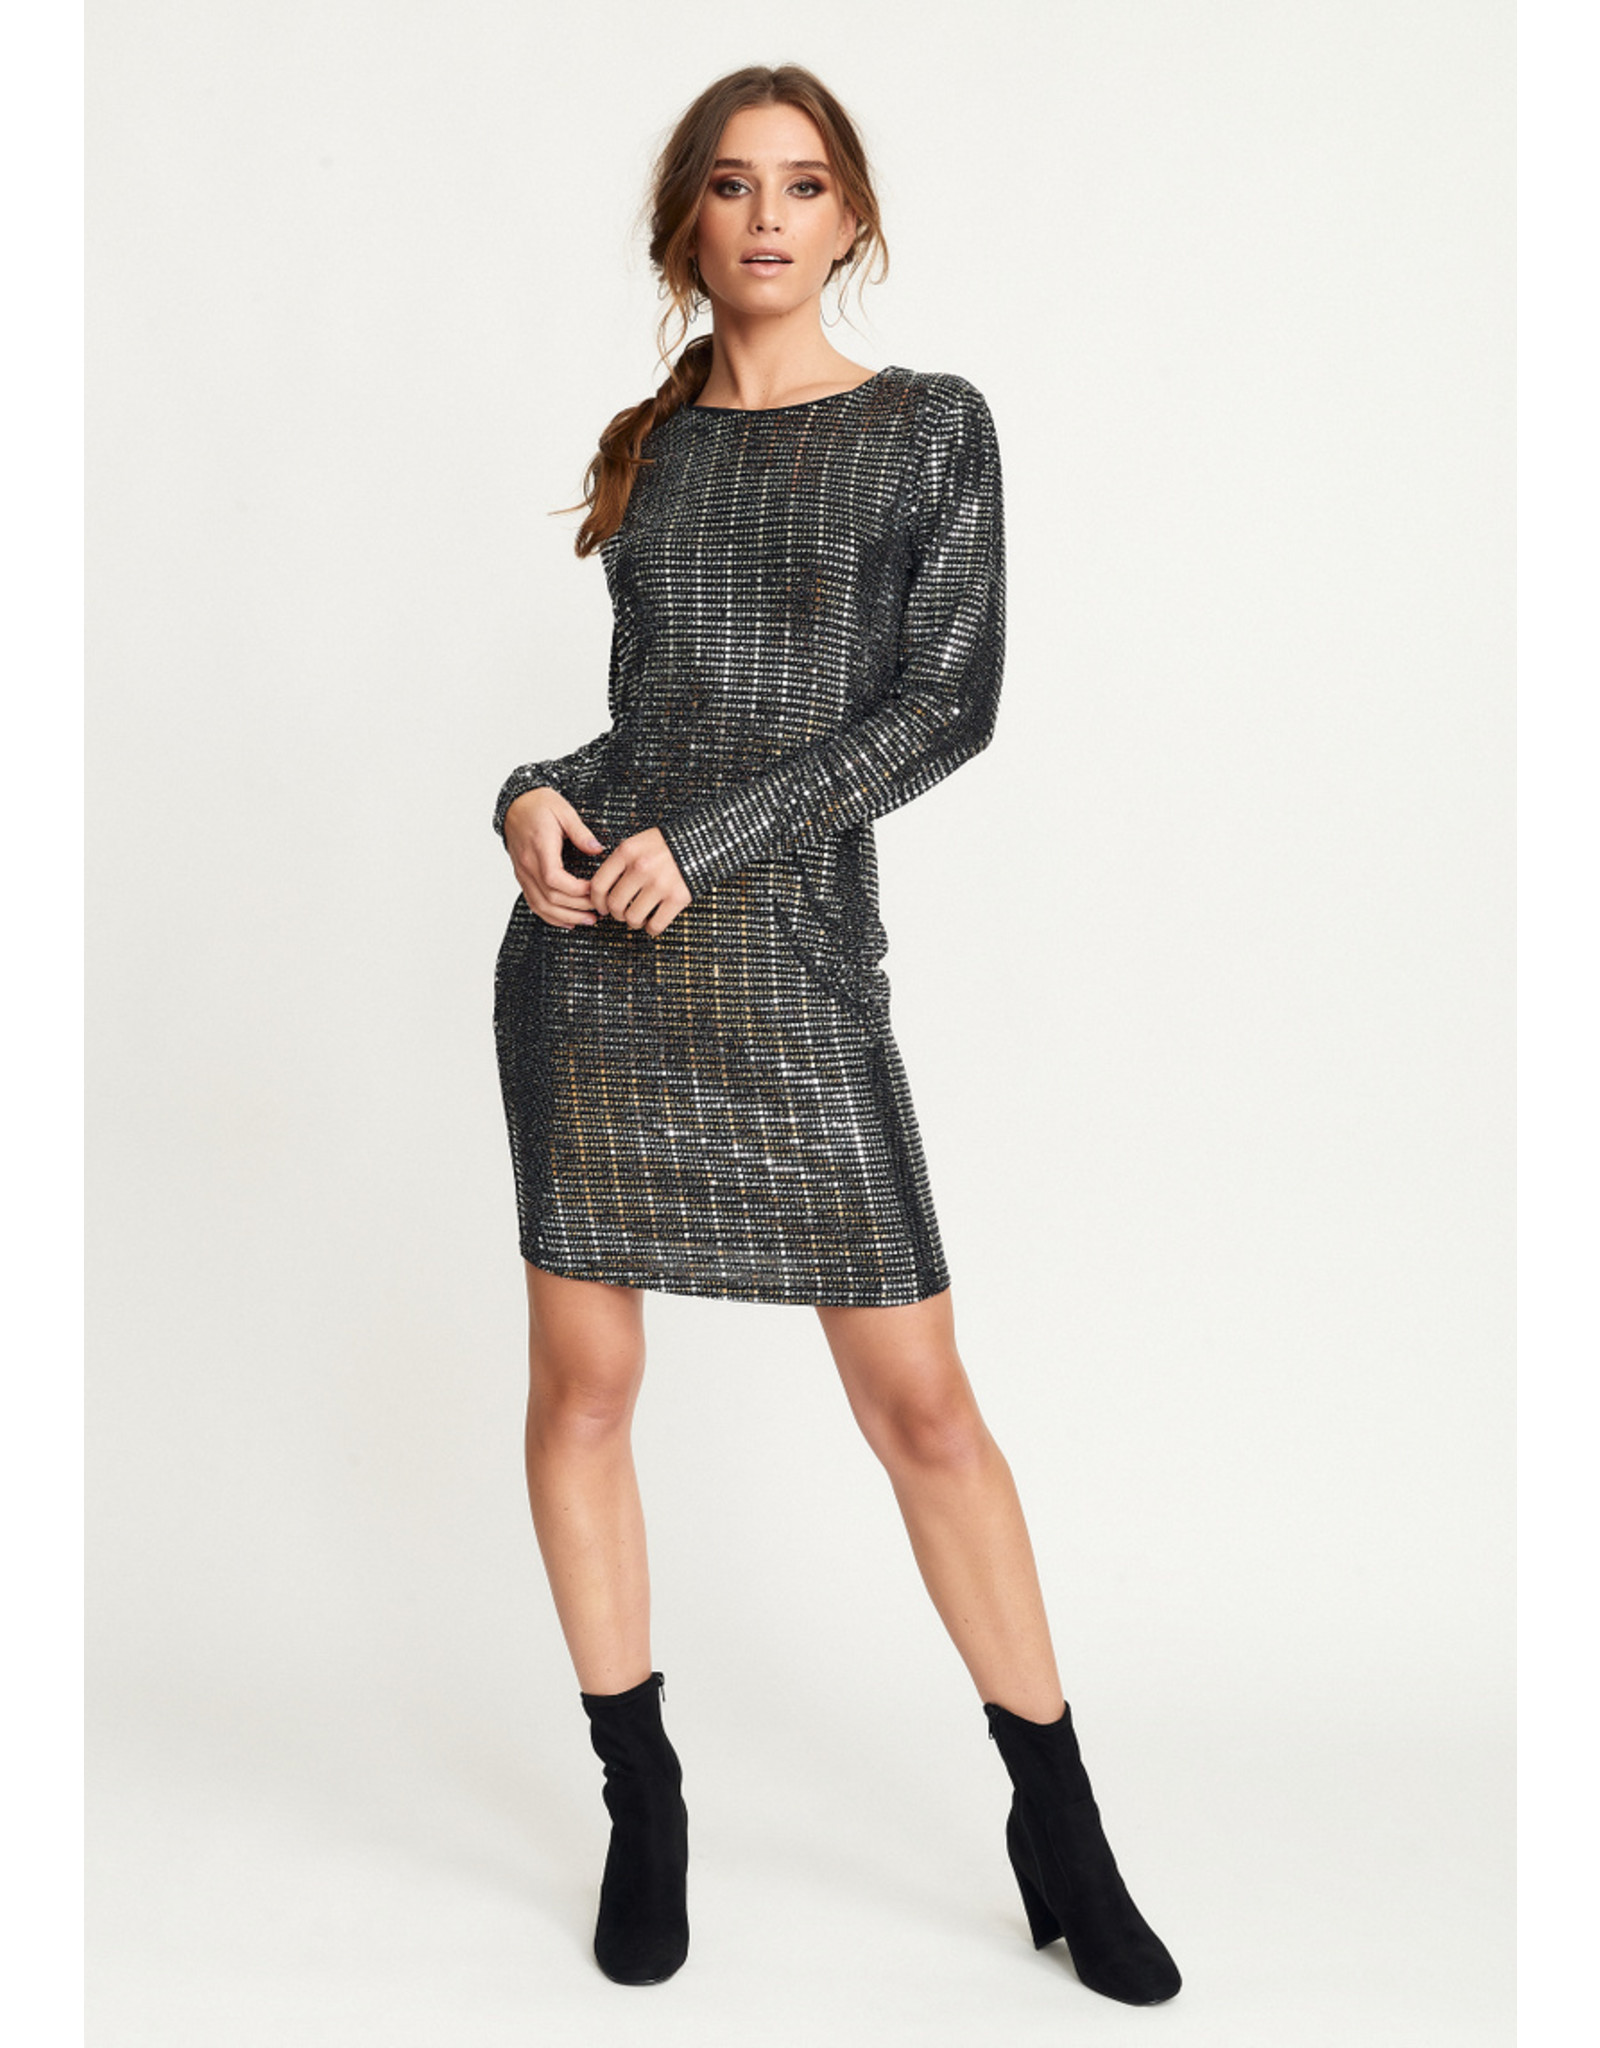 Rut&Circle Denize dress